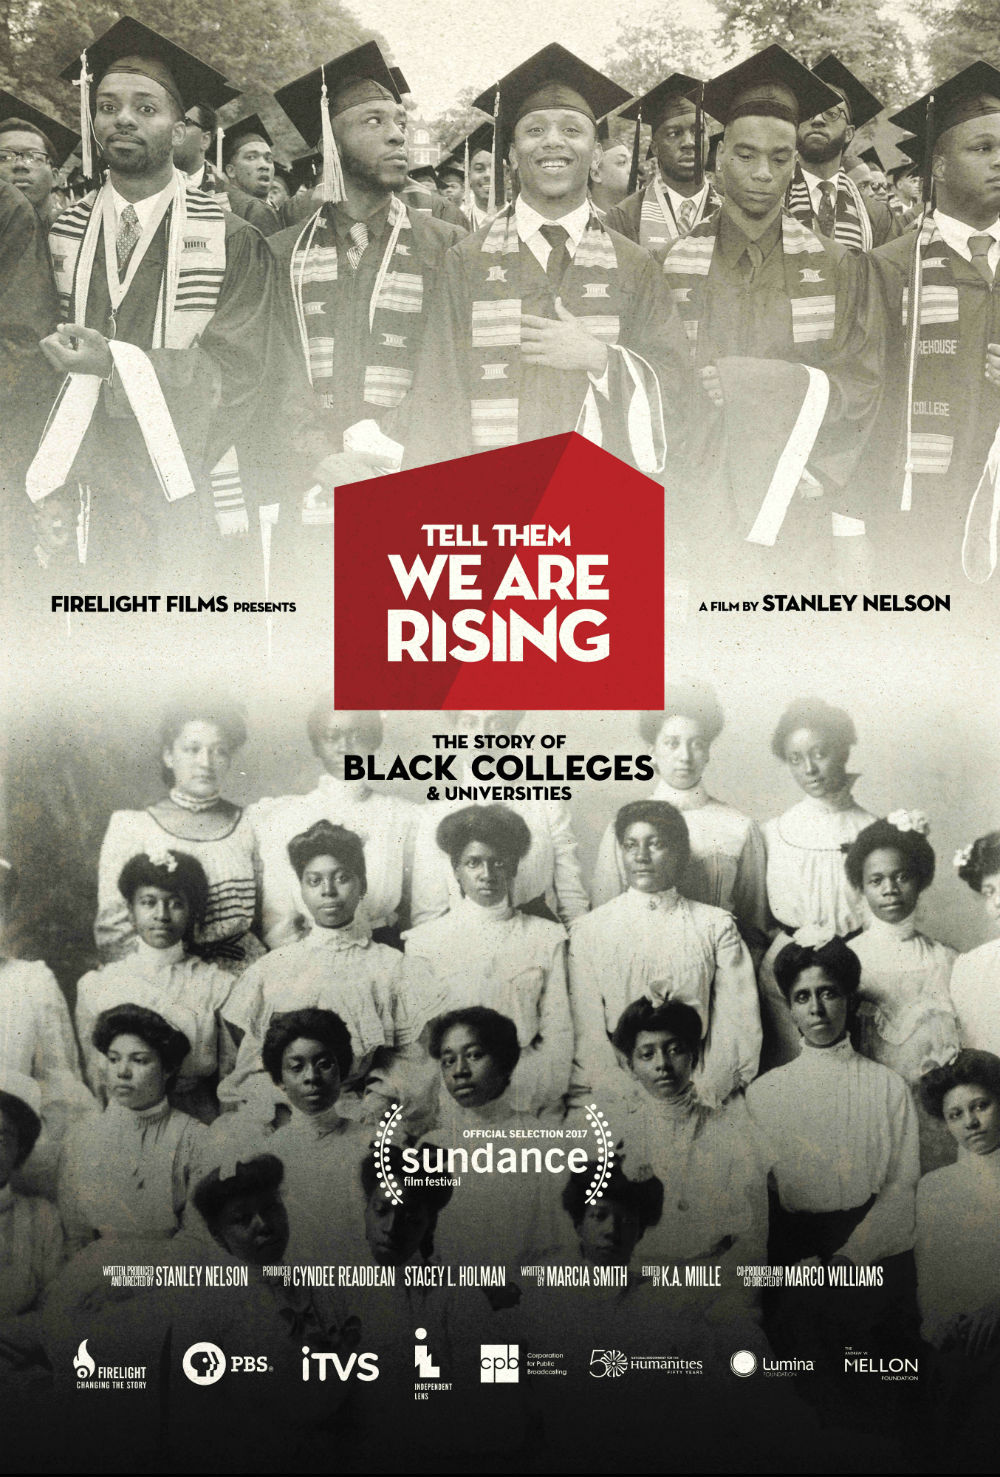 The Story of Historically Black Colleges and Universities